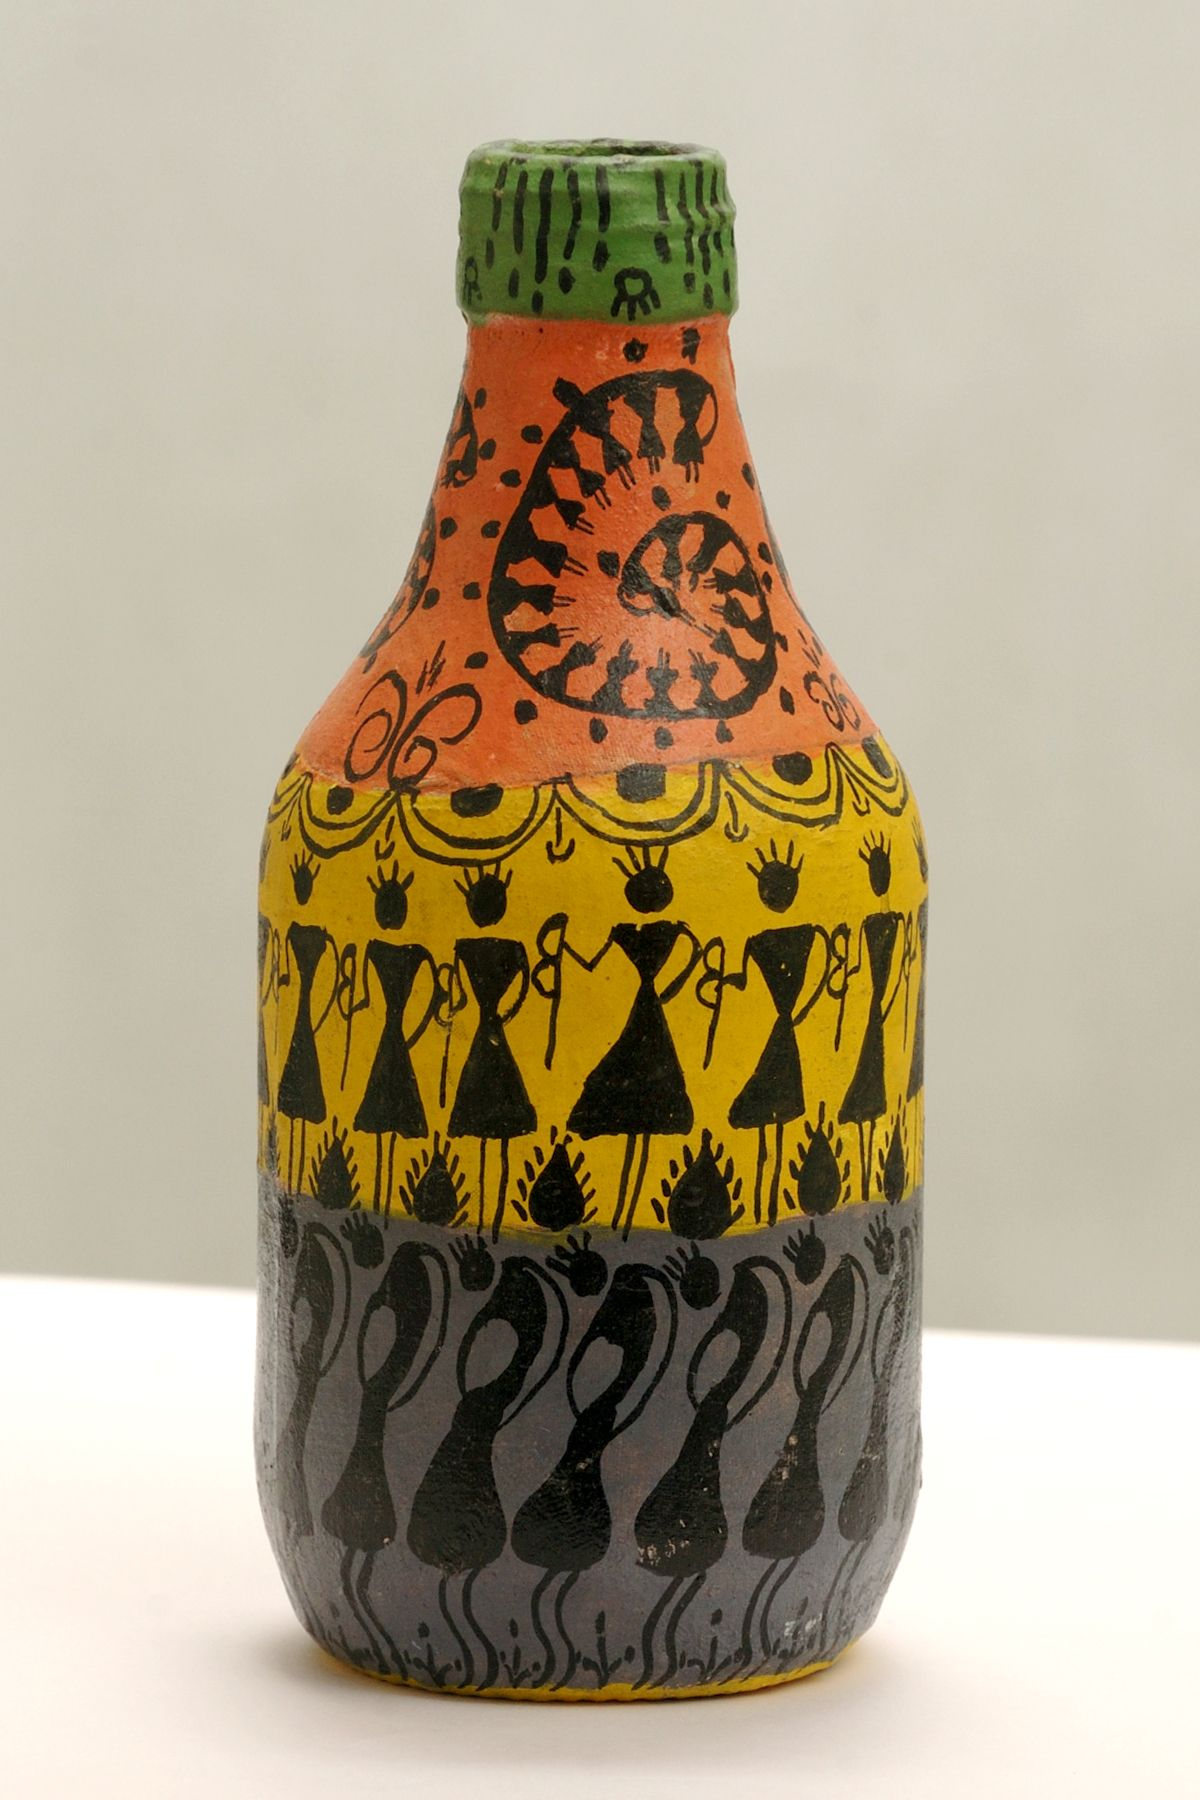 Decorated Glass Bottles Collectors Itembeautiful Warli Painted Glass Bottle For $30